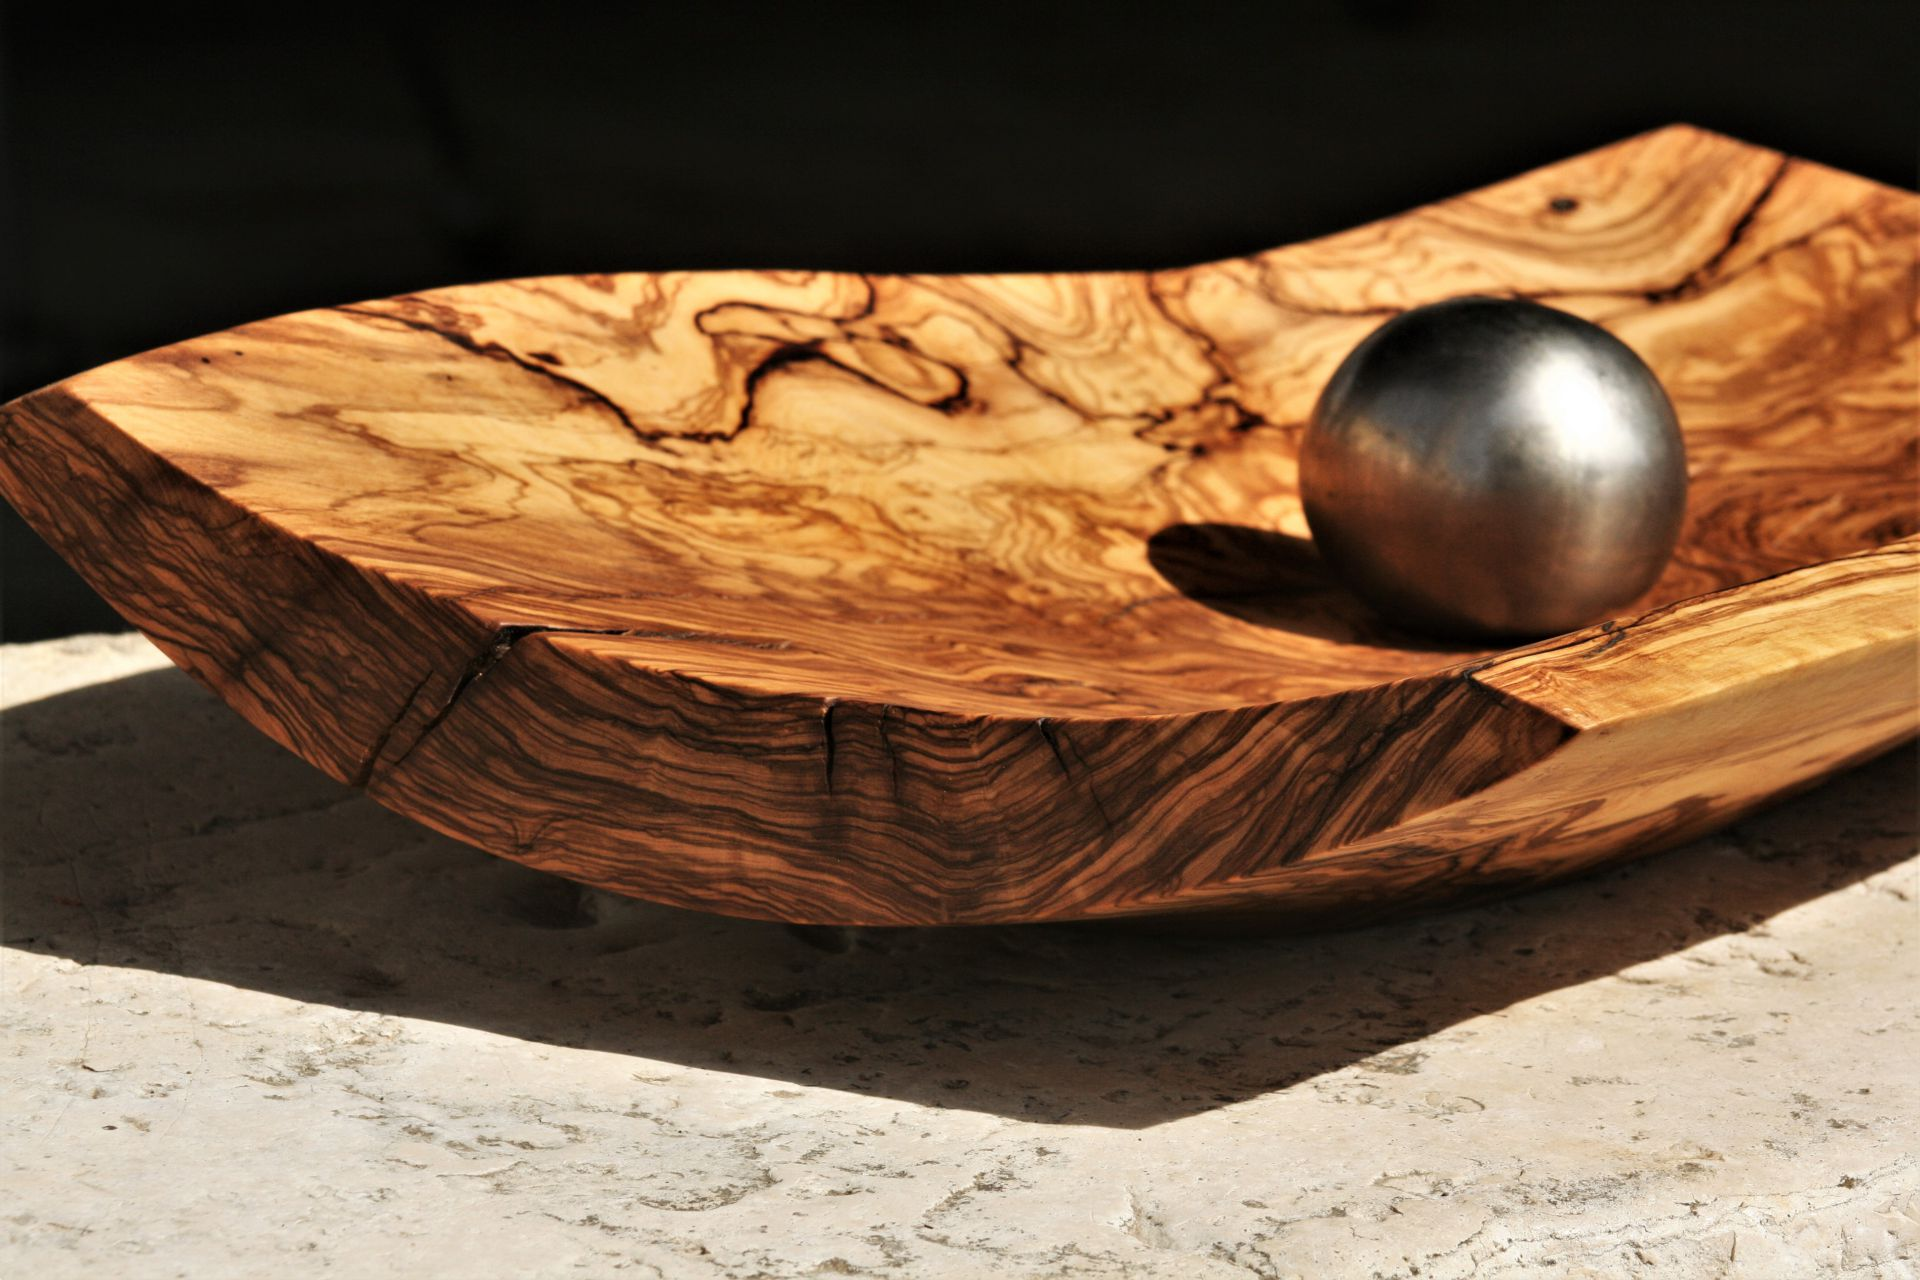 wooden bowls original handmade Mediterranean olive wood unique artist design fruit bowl platter extra large